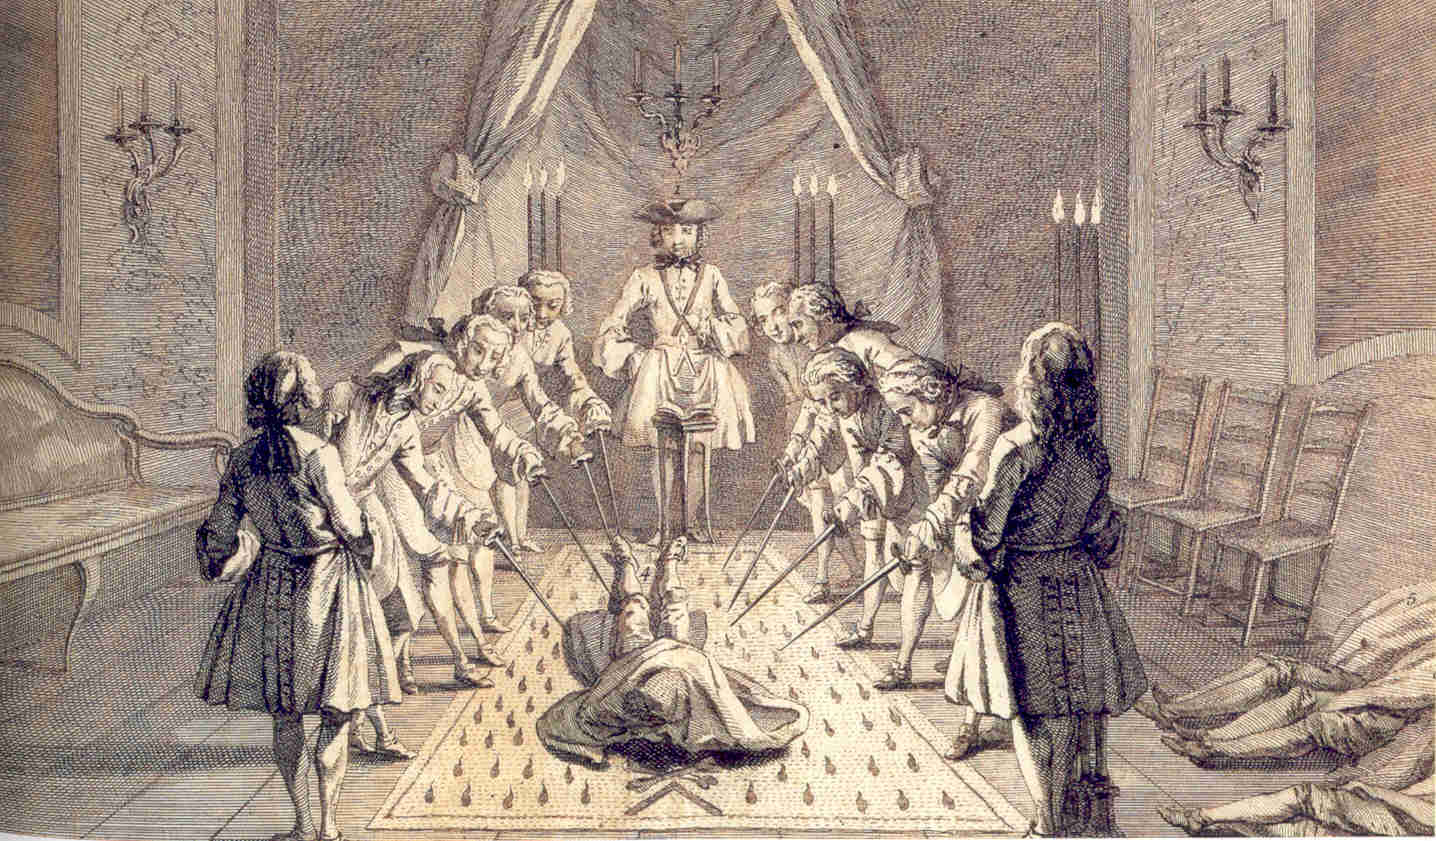 Second part of the initiation into the third degree